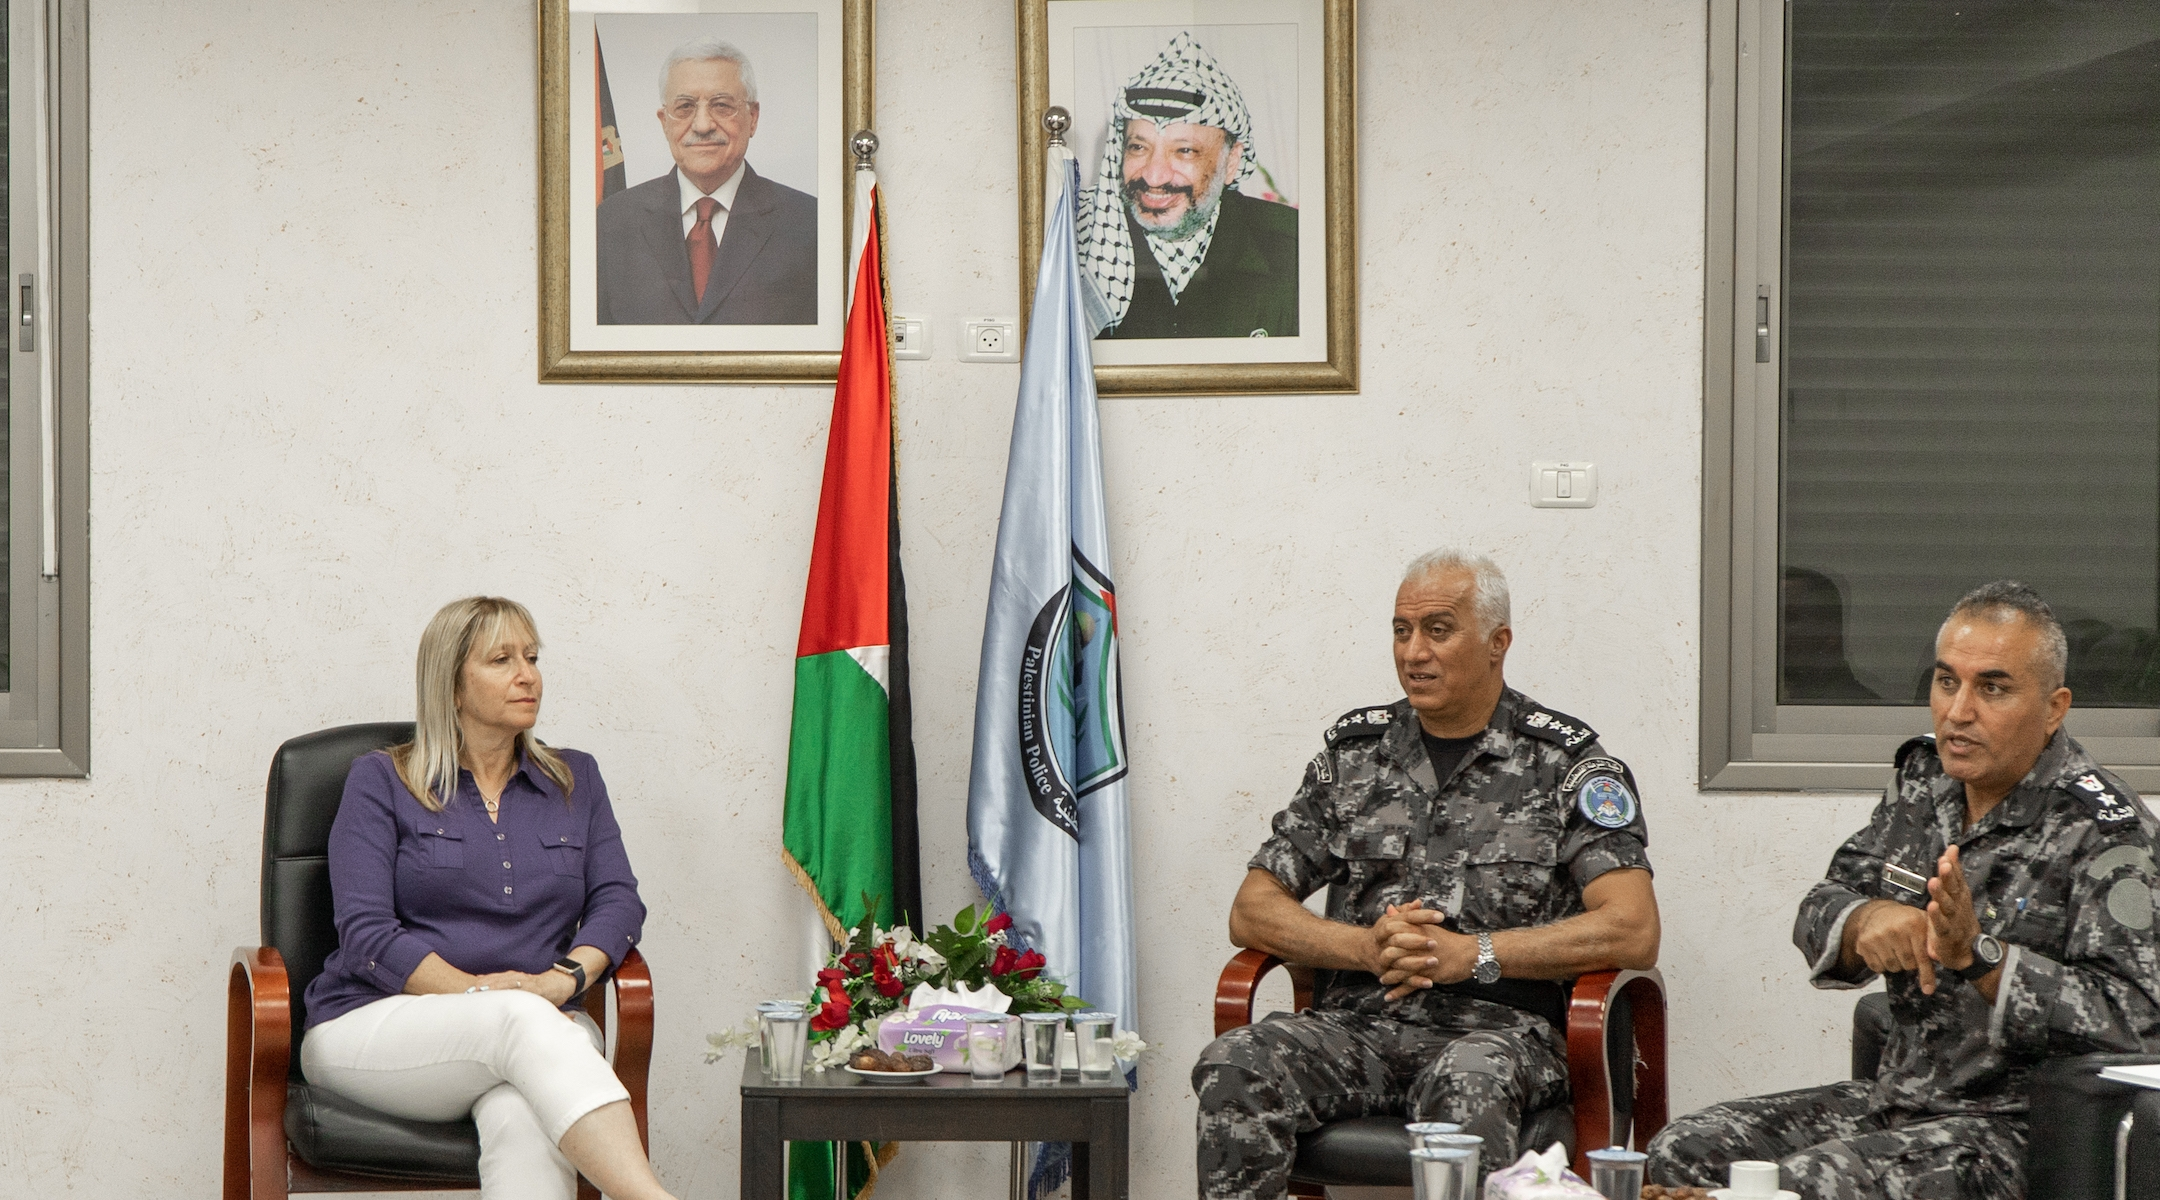 Tammy Gillies, the ADL San Diego regional director, meets with Colonel Zahar Shahaab of the Palestinian College of Police Sciences (right) in Jericho during a 2019 delegation. (Courtesy of the ADL)